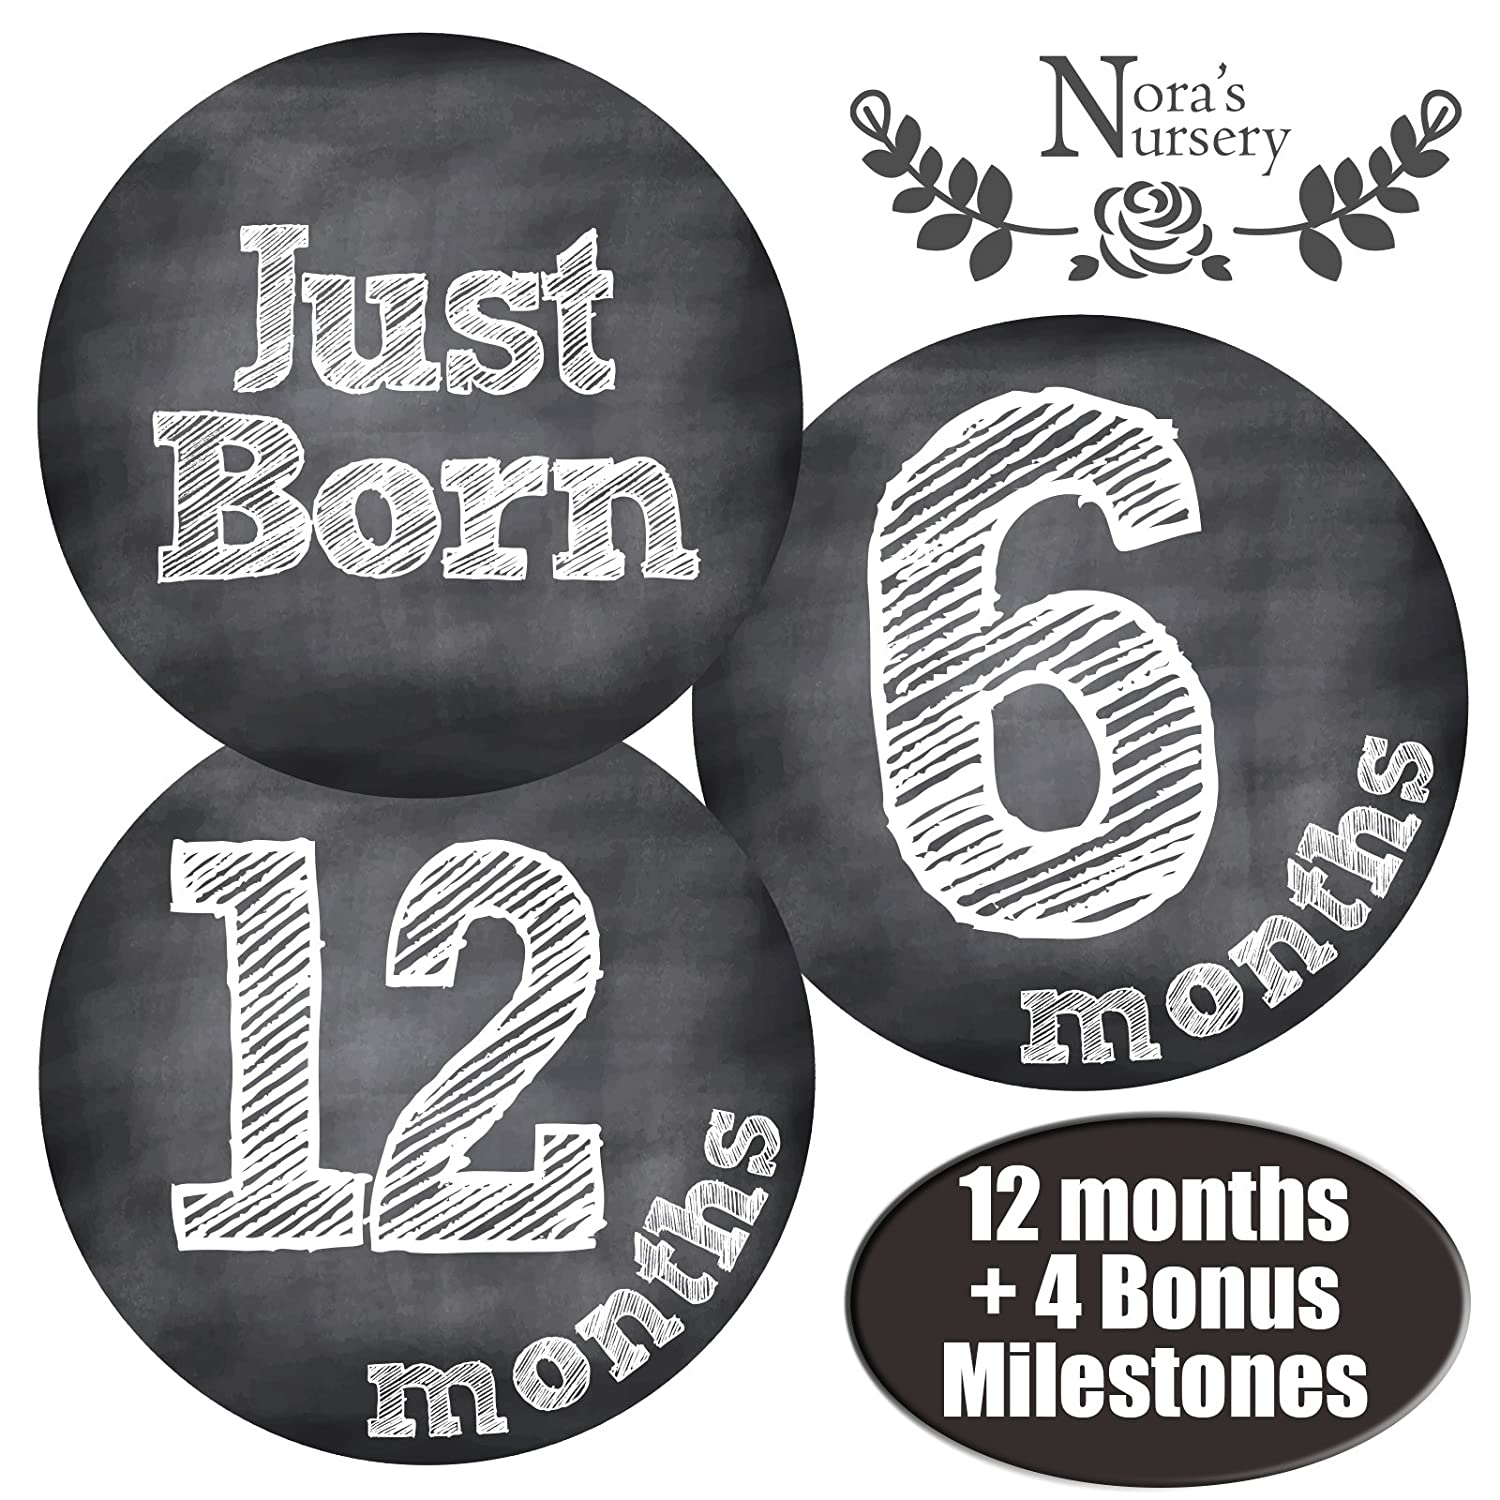 Chalkboard Baby Monthly Stickers - Shower Gift Idea or Scrapbook Photo Keepsake Nora's Nursery STK109